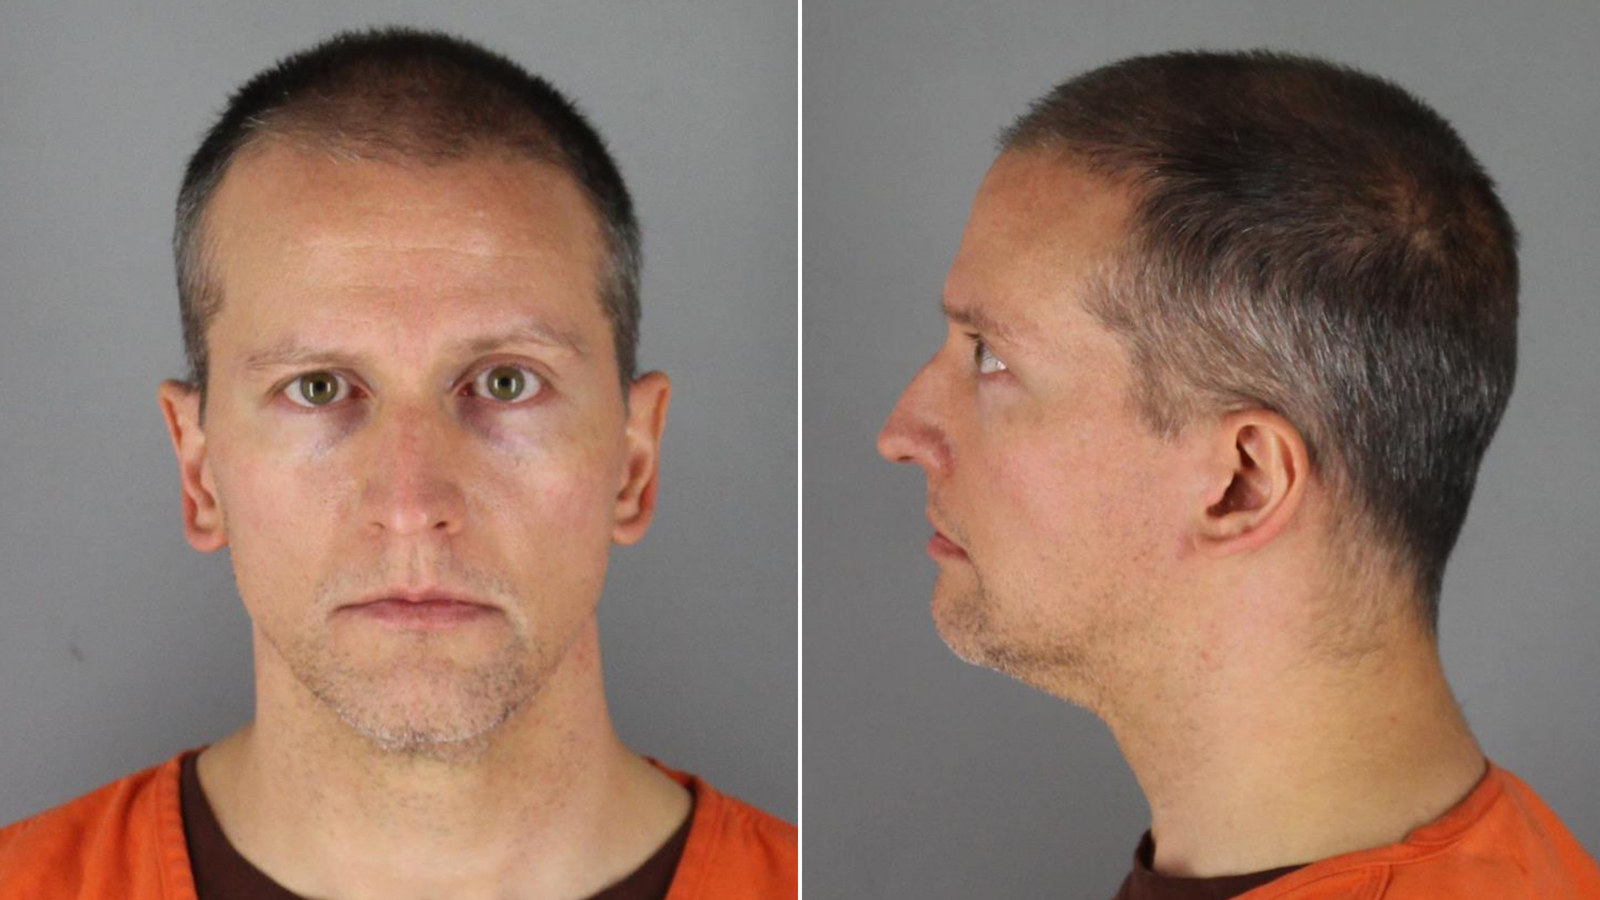 Derek Chauvin appears in a mugshot in 2020. (Hennepin County Sheriff's Office)